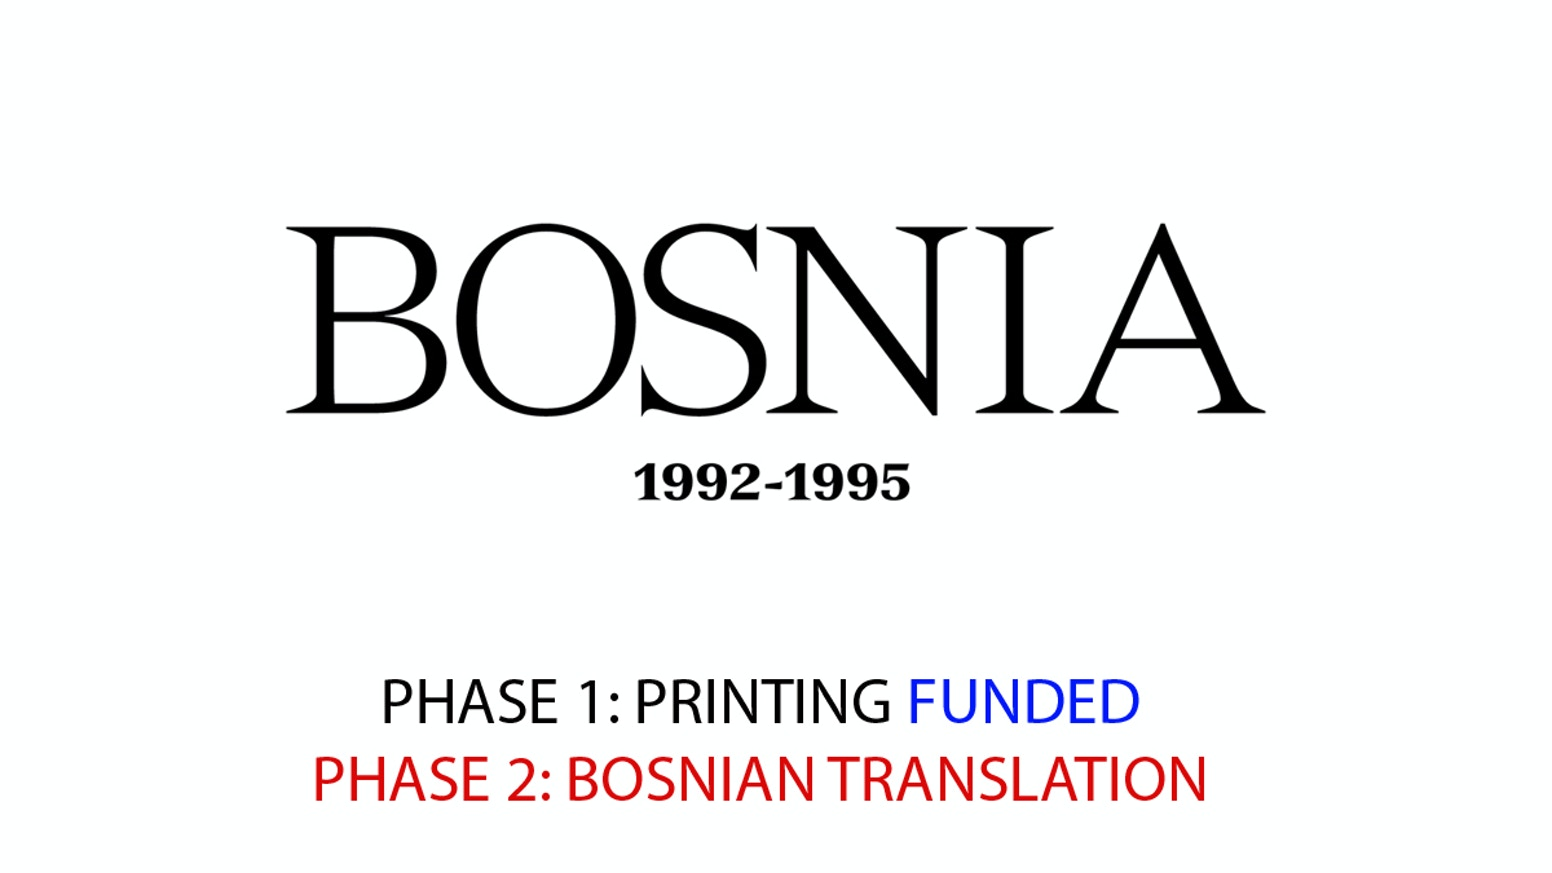 The Bosnia Book Project 1992